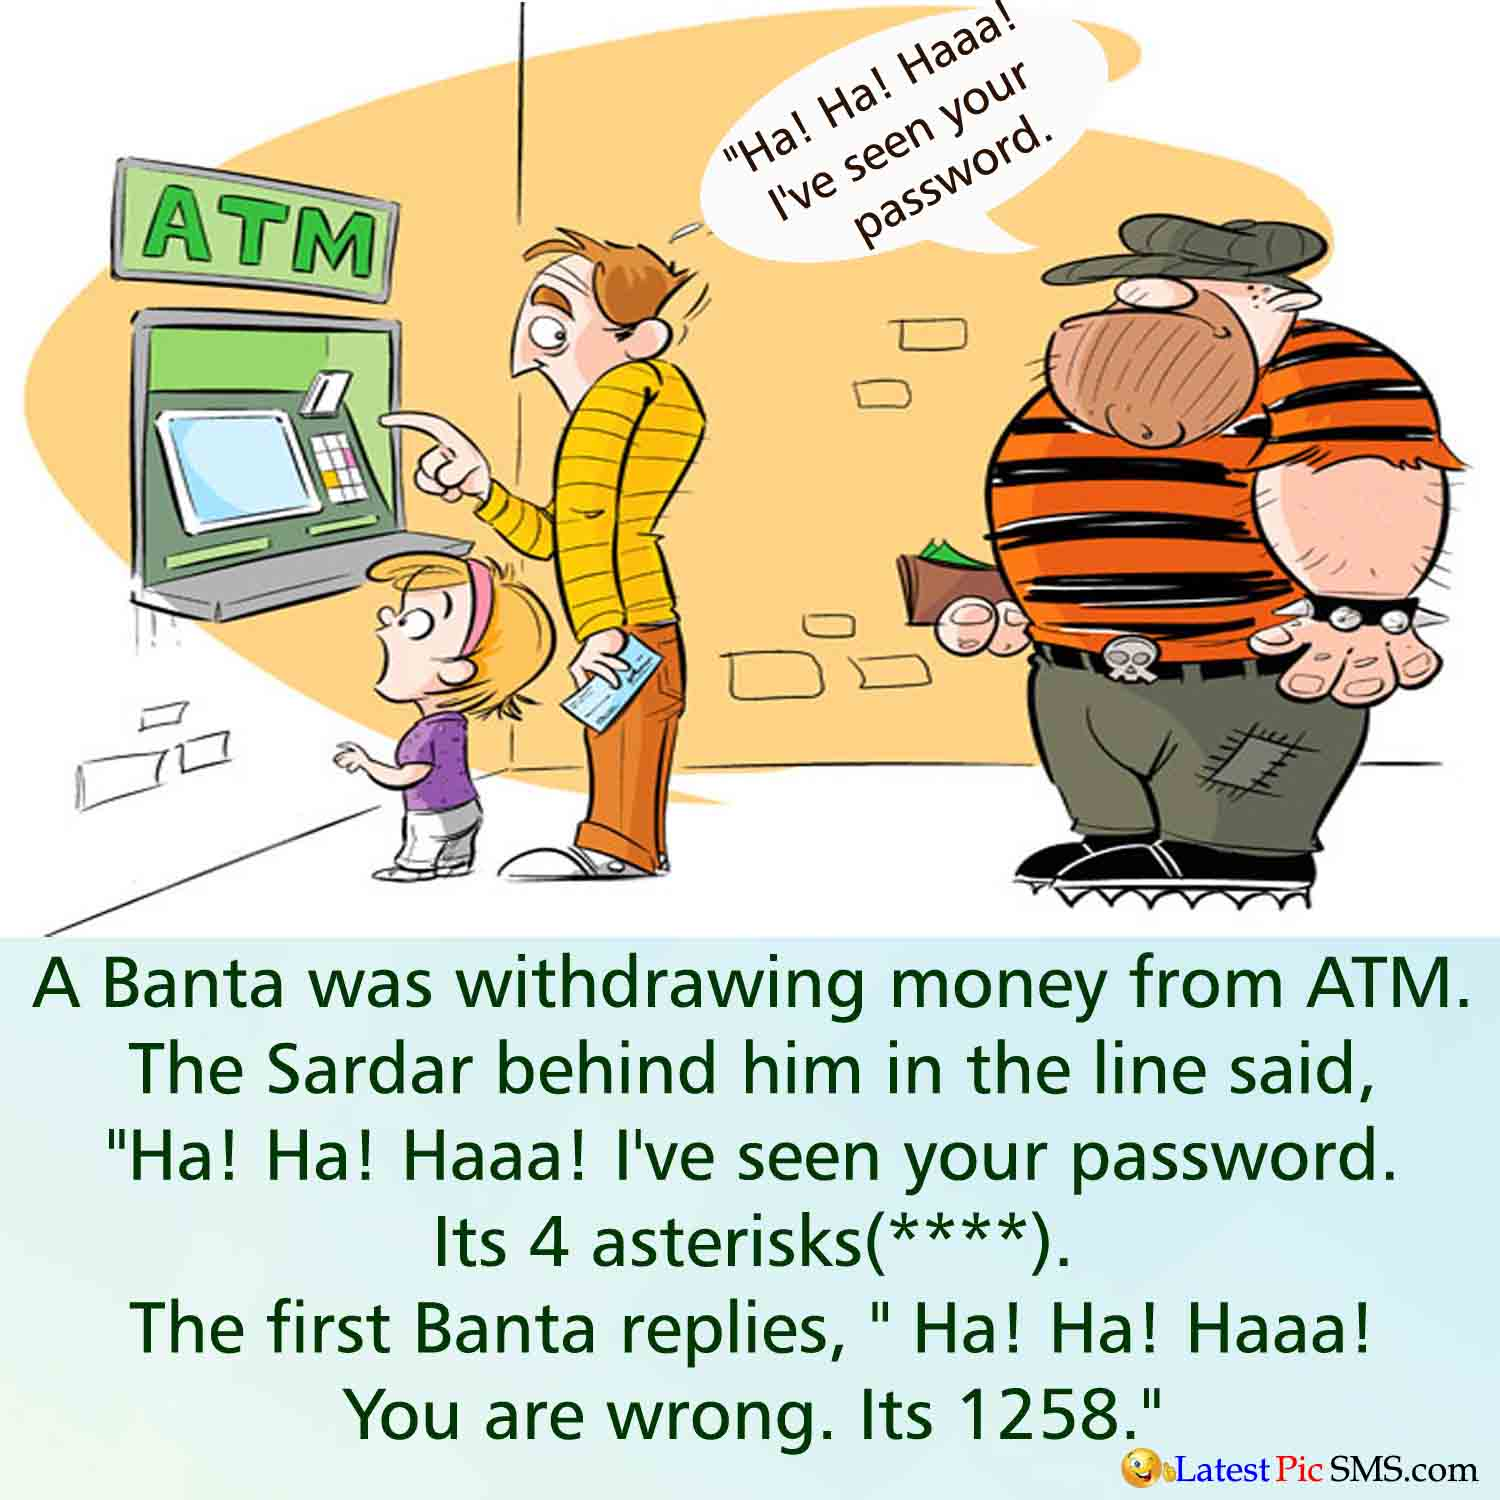 Banta bank ATM jokes